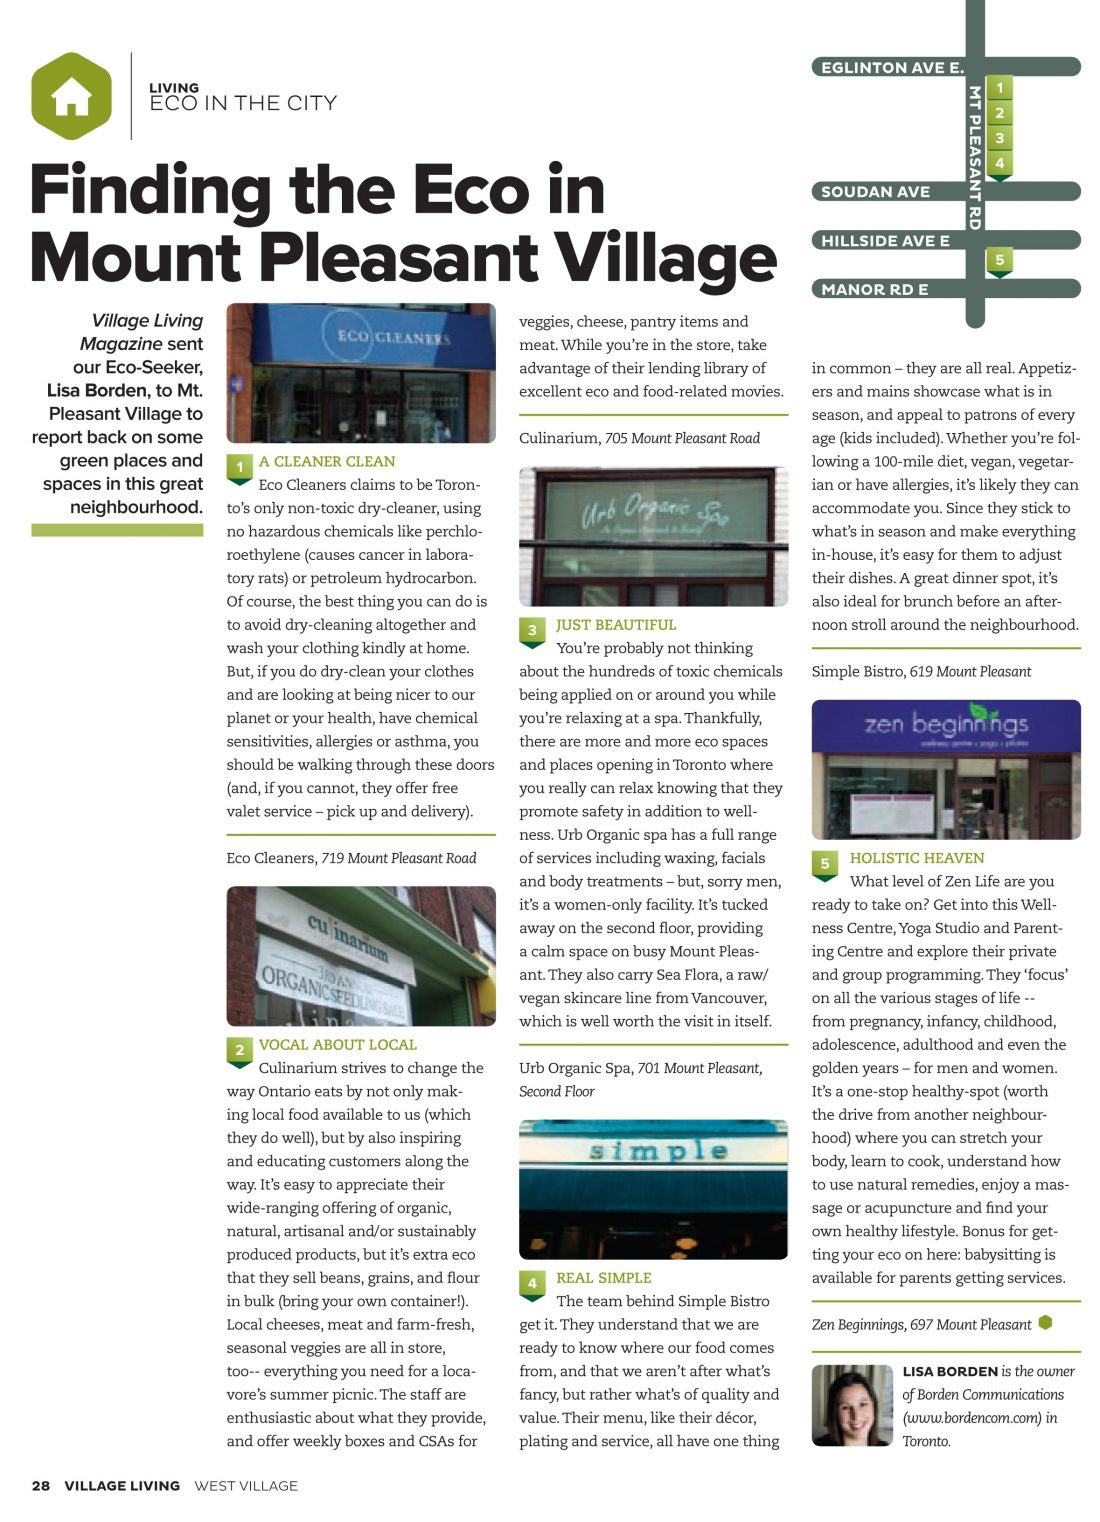 Finding the Eco in Mount Pleasant Village, Village Living Magazine